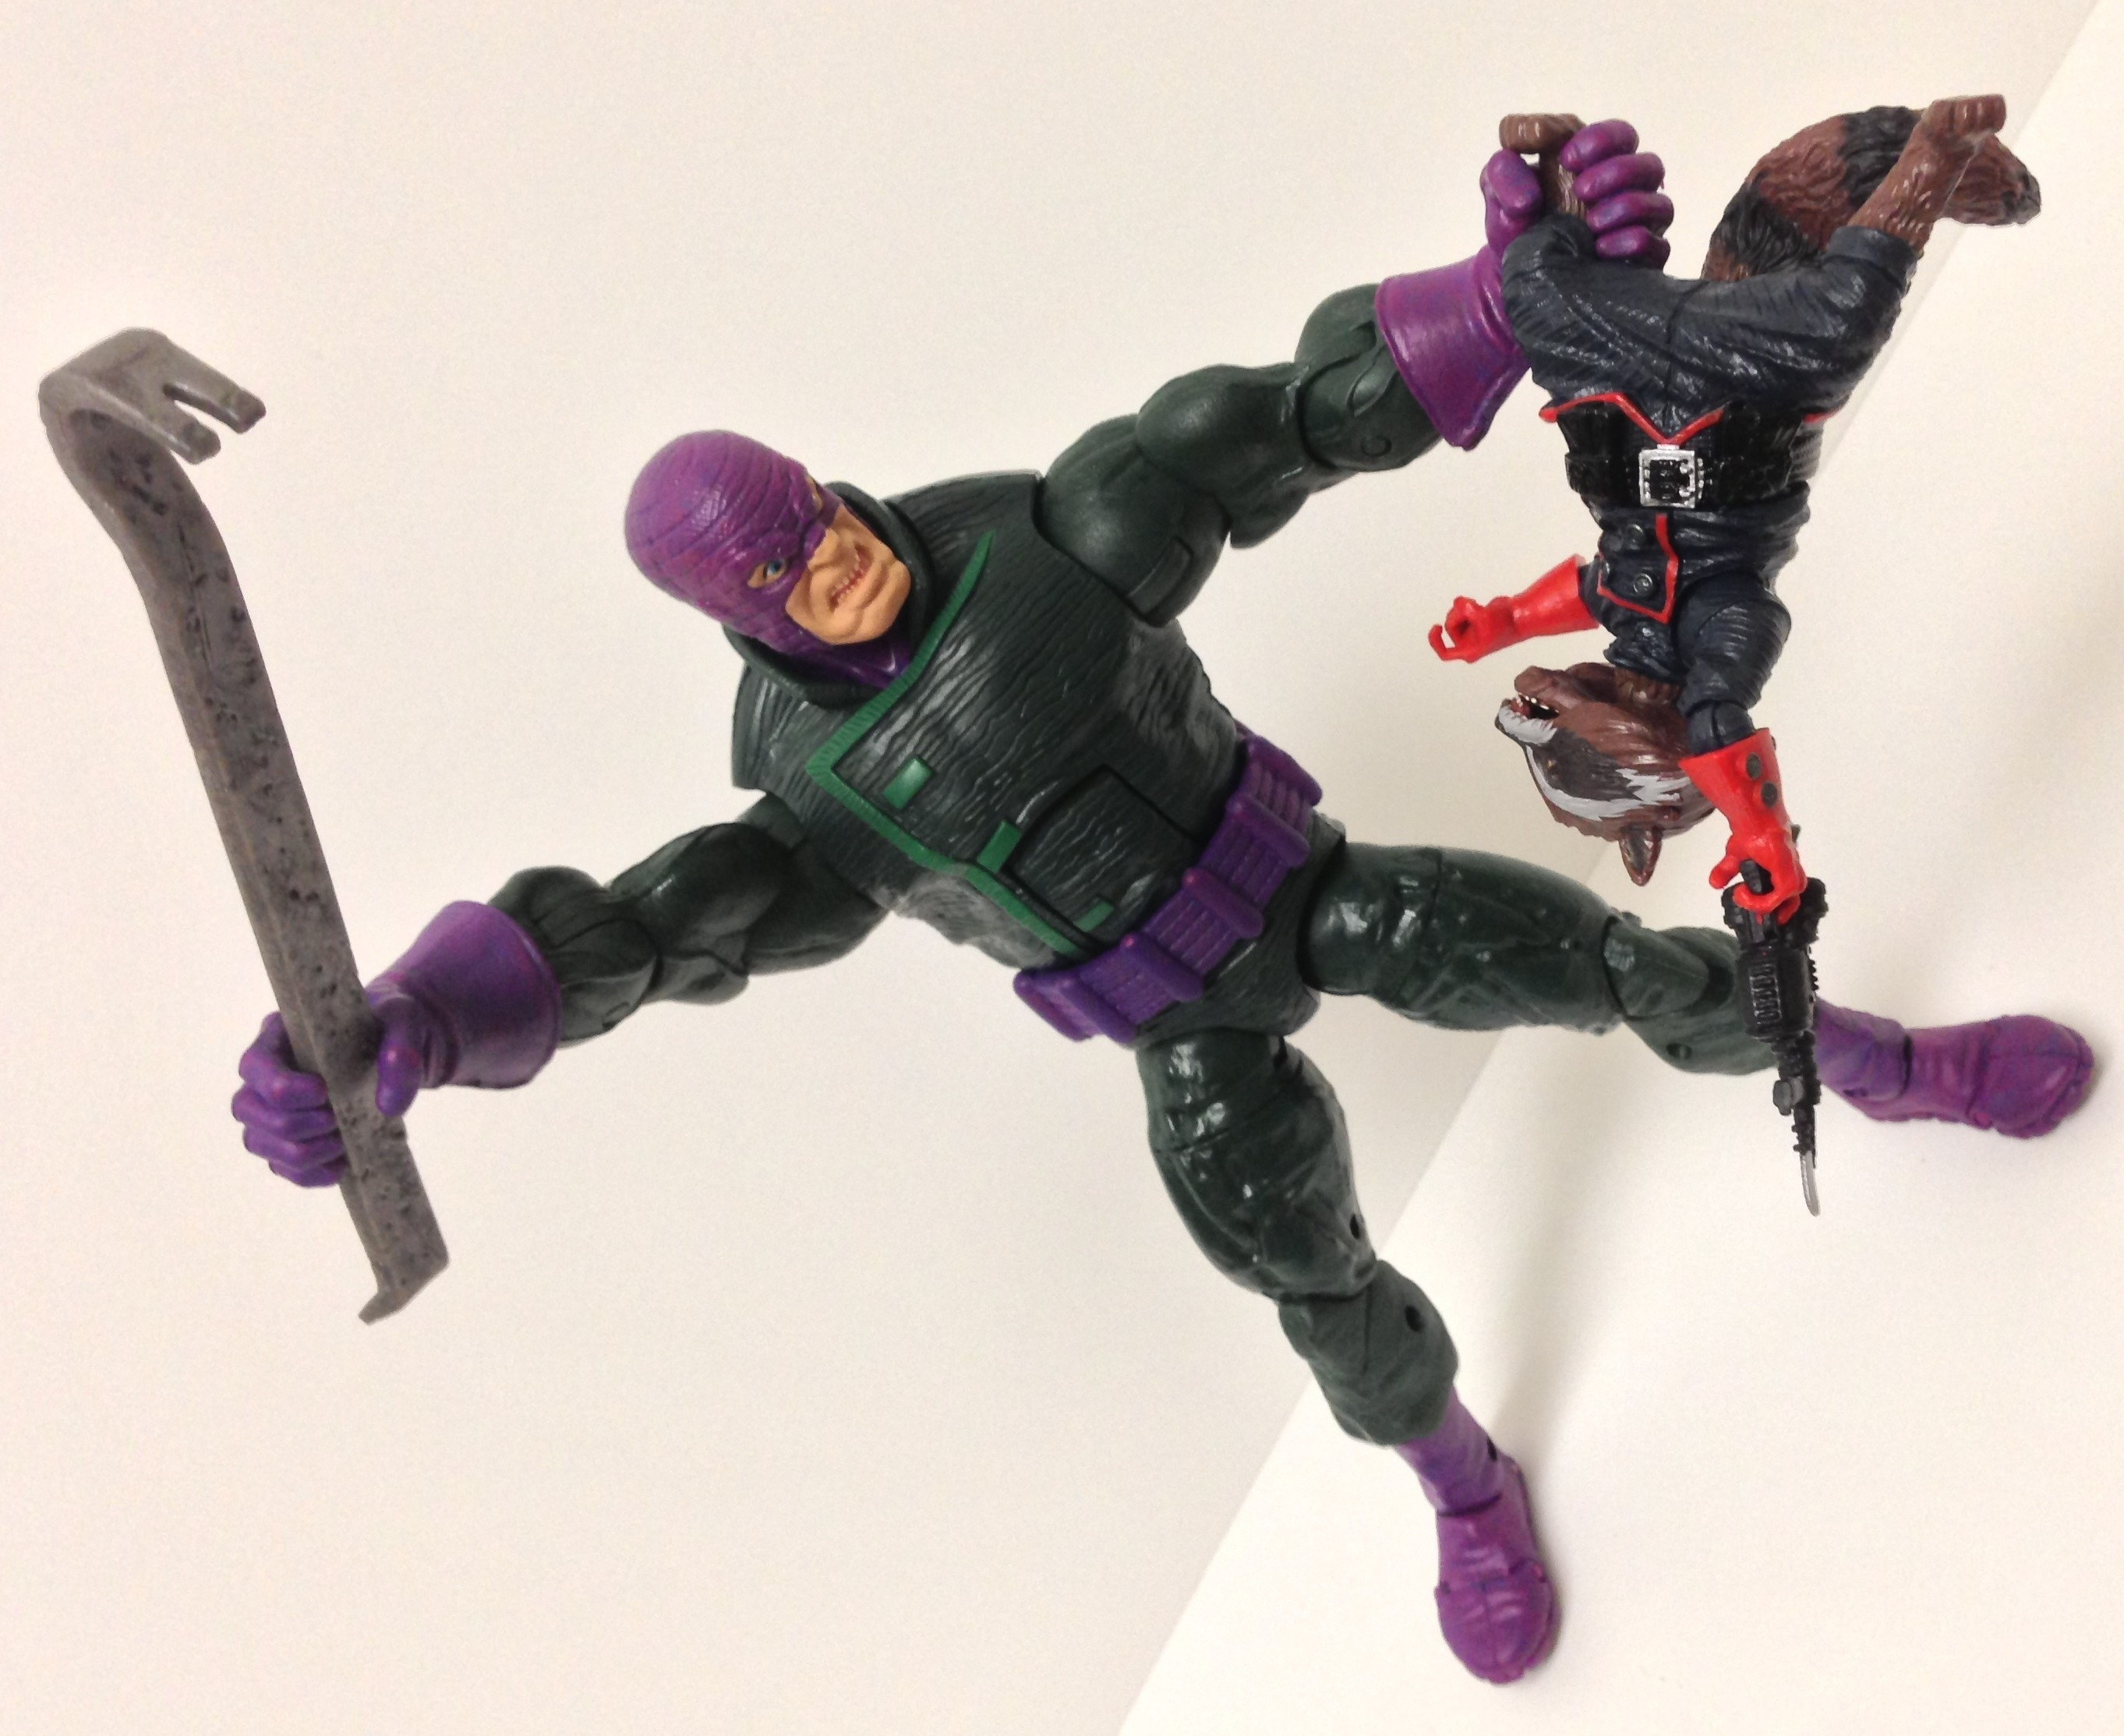 Hasbro Marvel Legends 2013 The Wrecker vs. Rocket Raccoon Figures